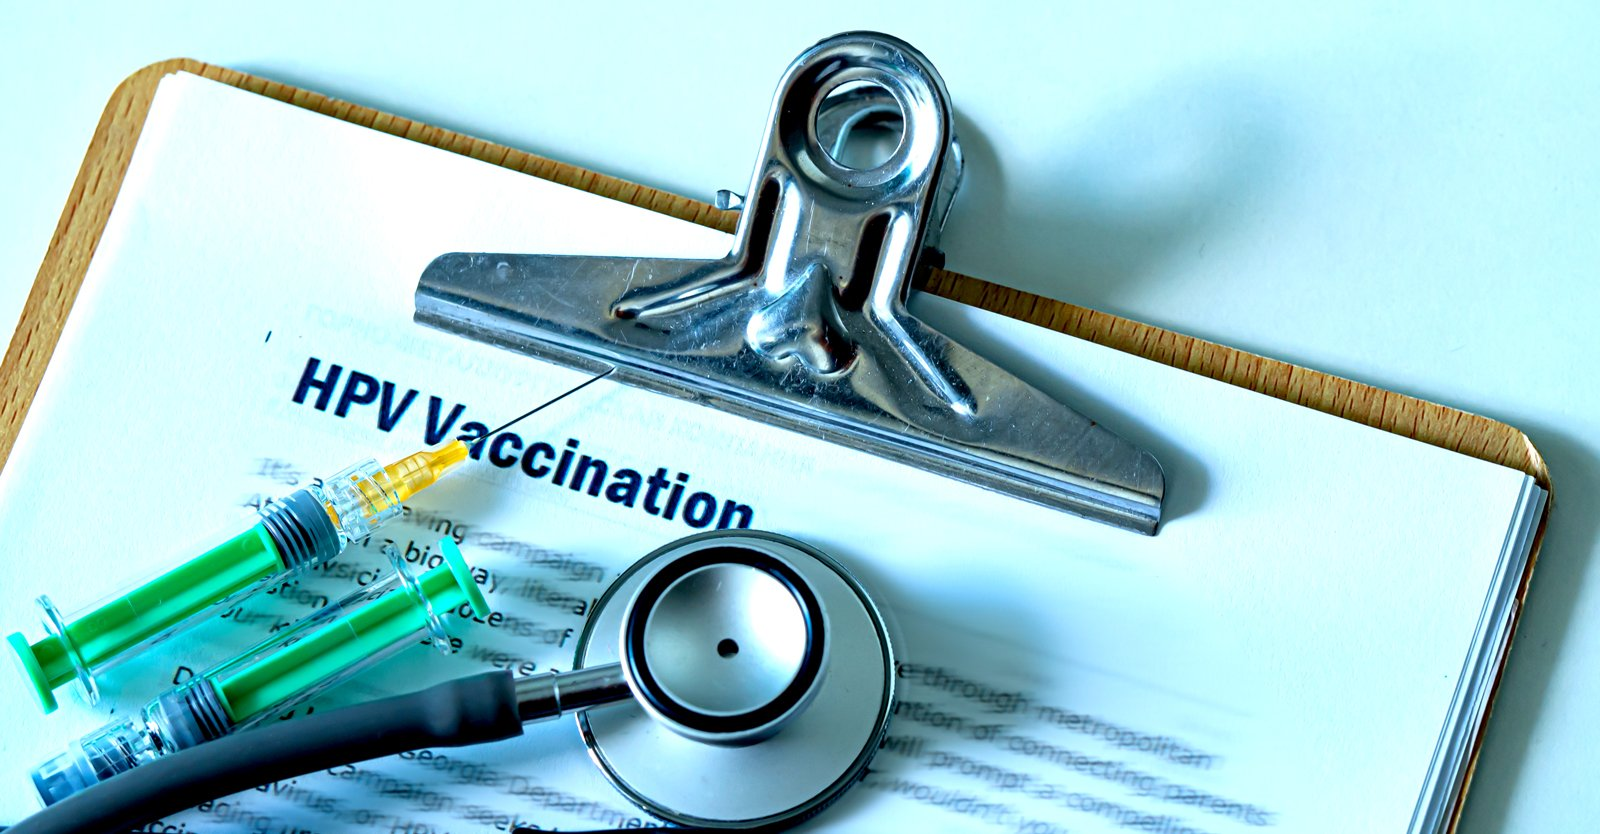 New Study: Gardasil HPV Vaccine Contains Chemical Used in Biological Warfare • Children's Health Defense